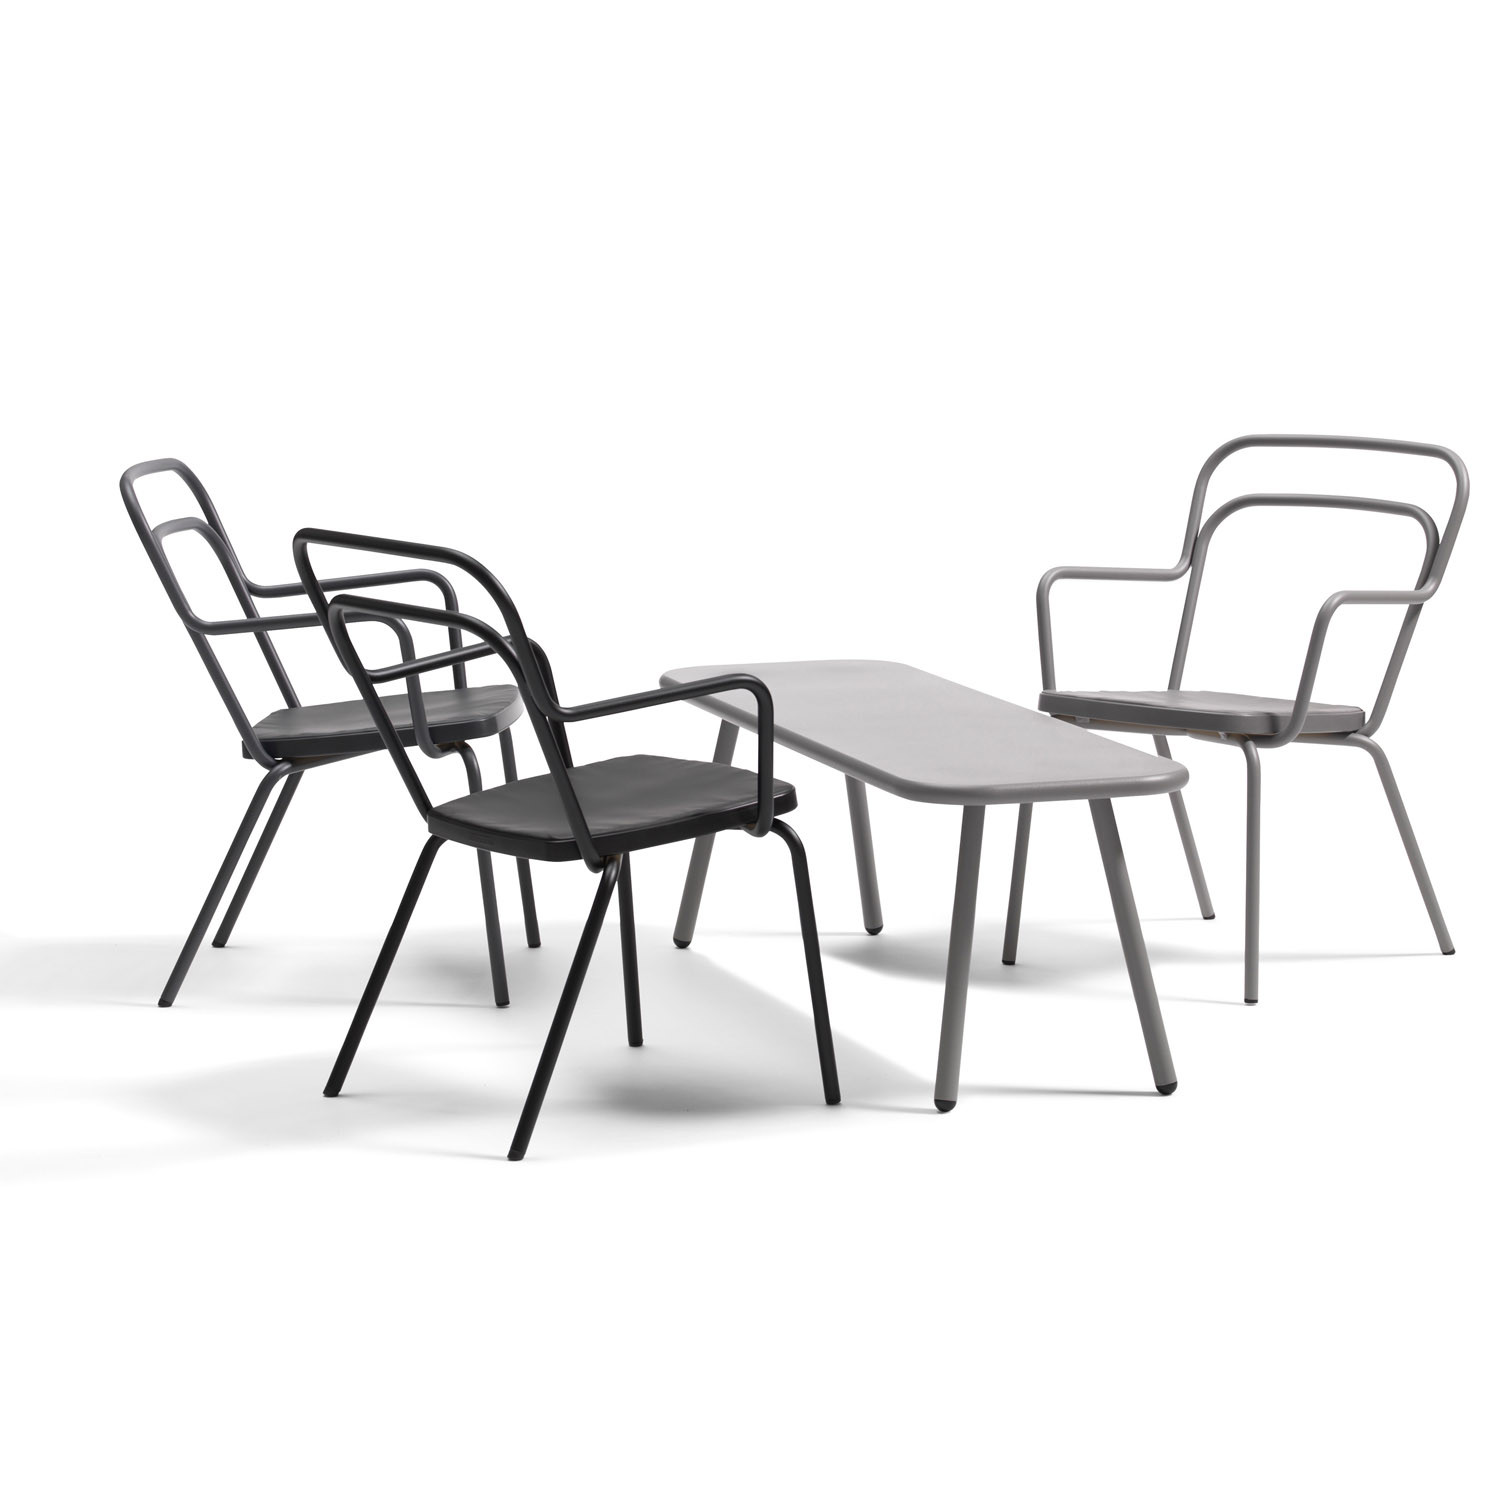 Outdoor Kaffe Chairs from Bla Station